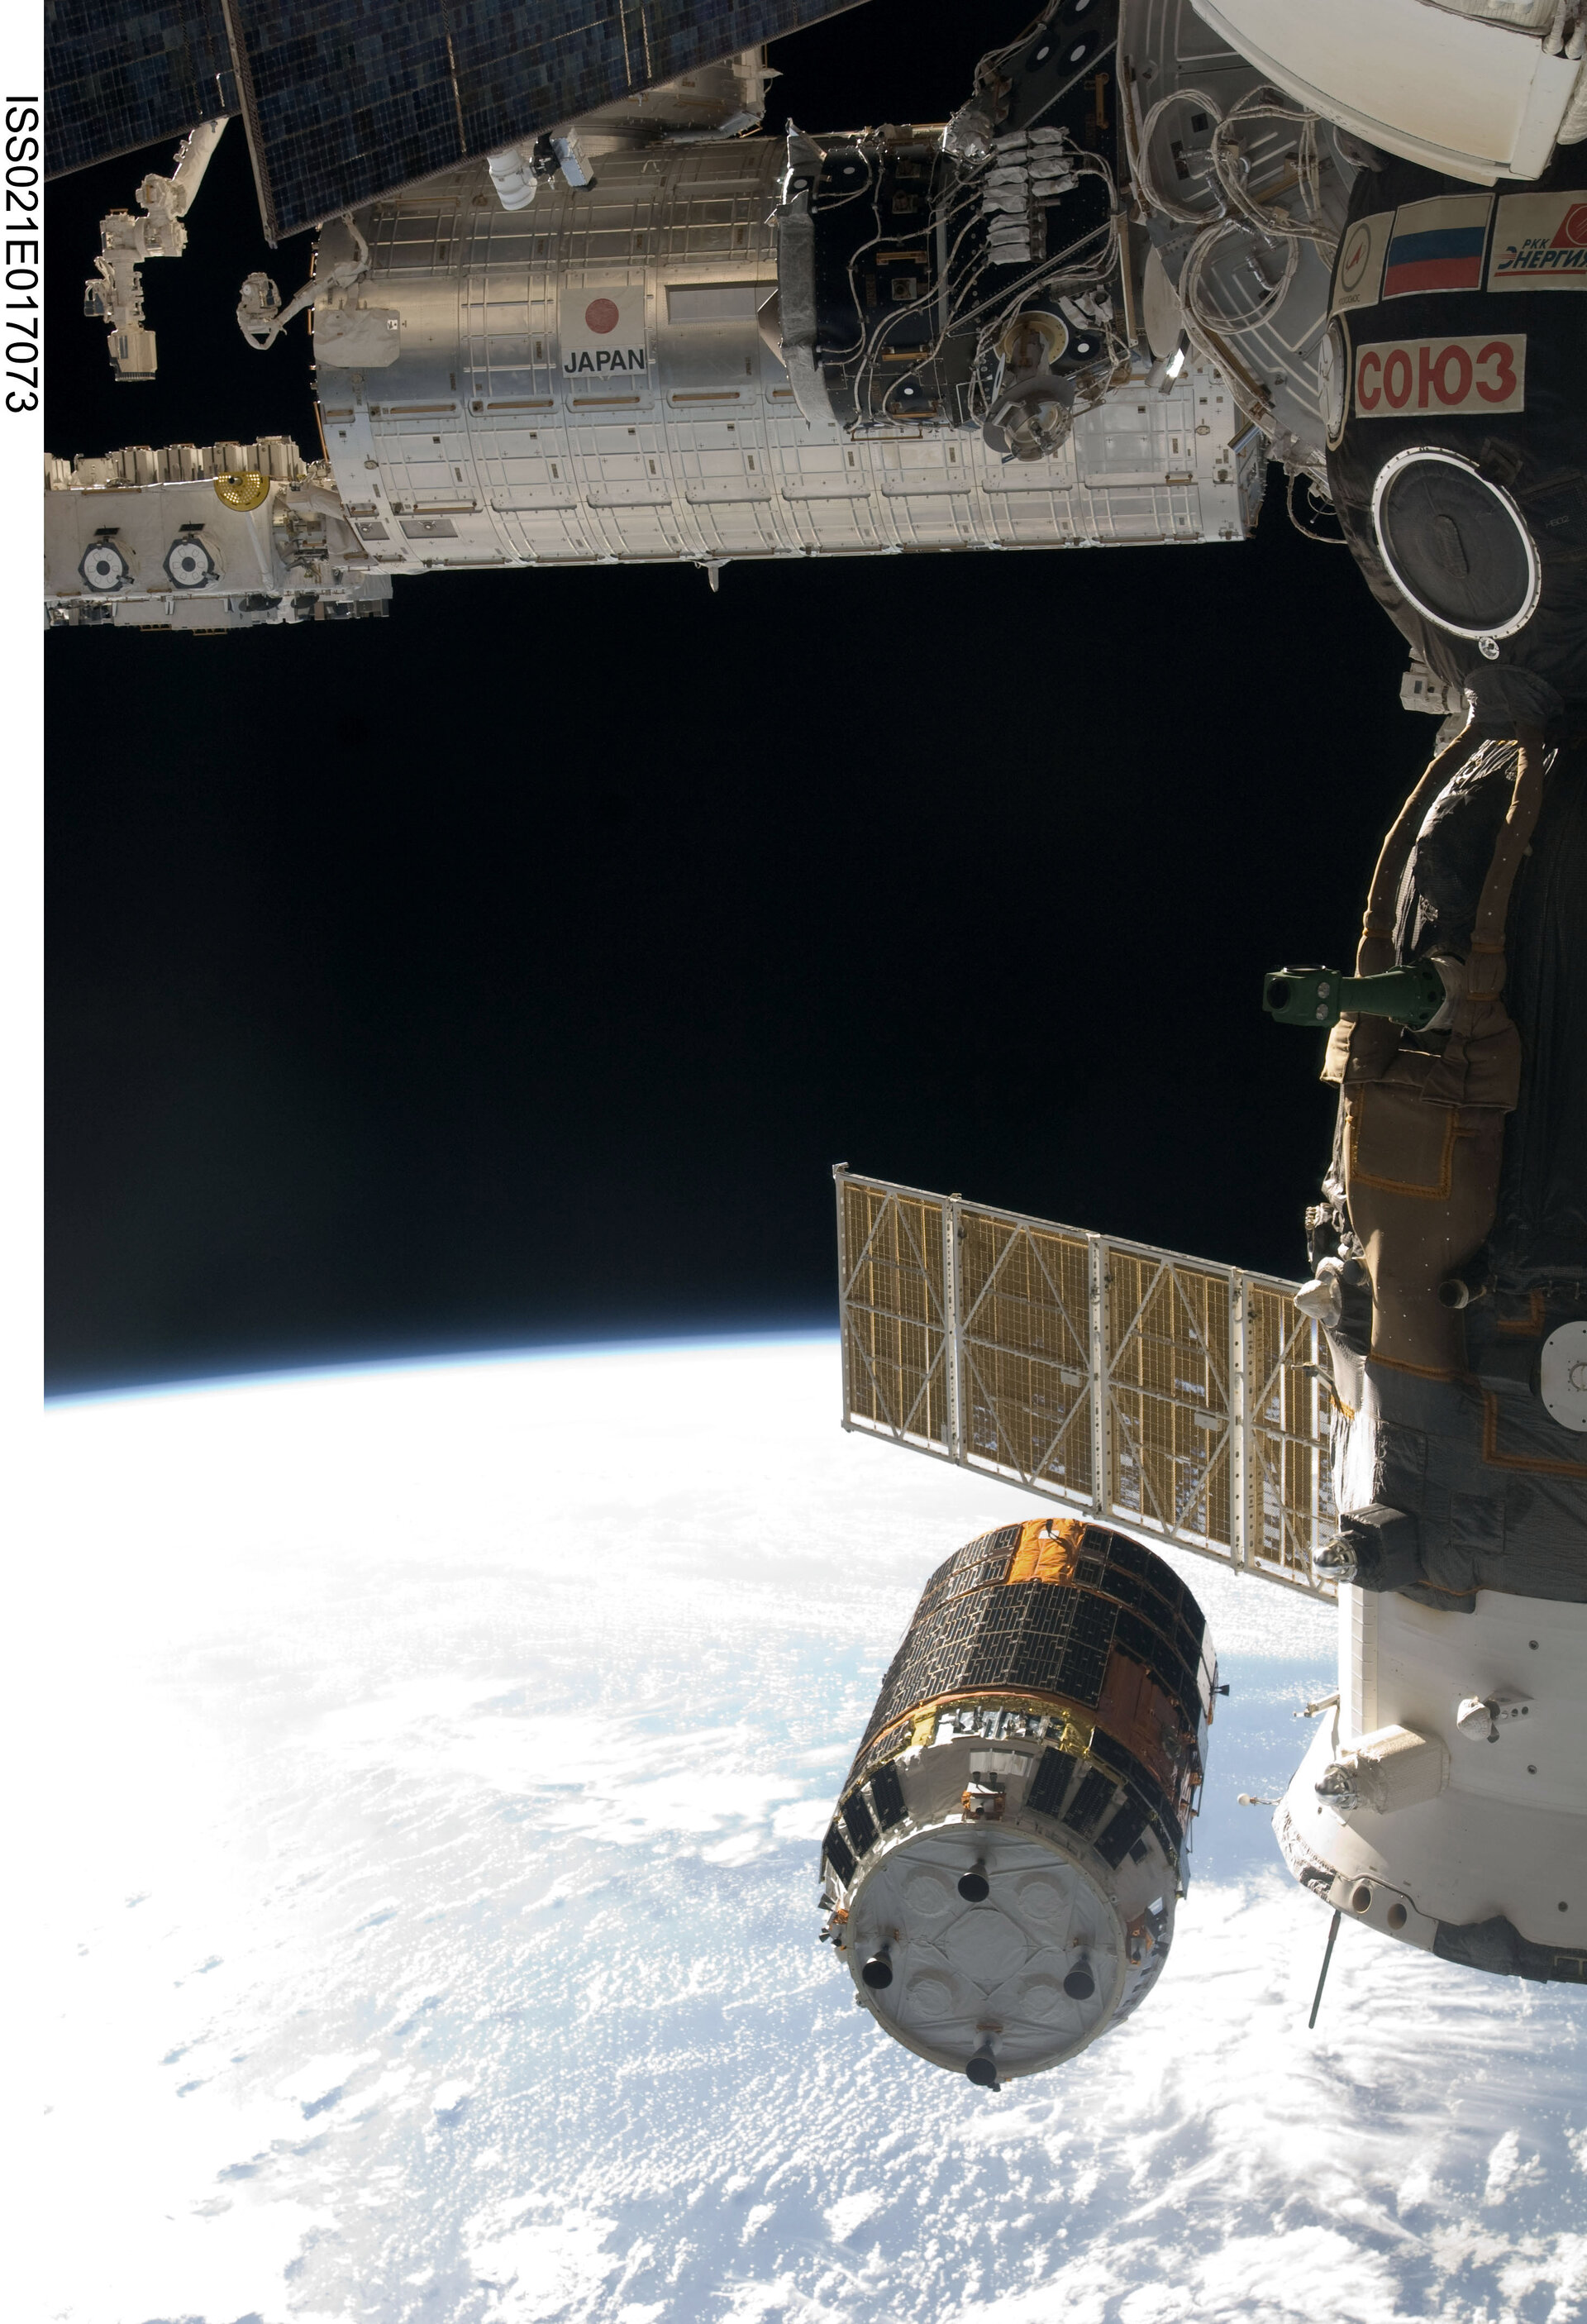 The Japanese H-II Transfer Vehicle departs from the International Space Station